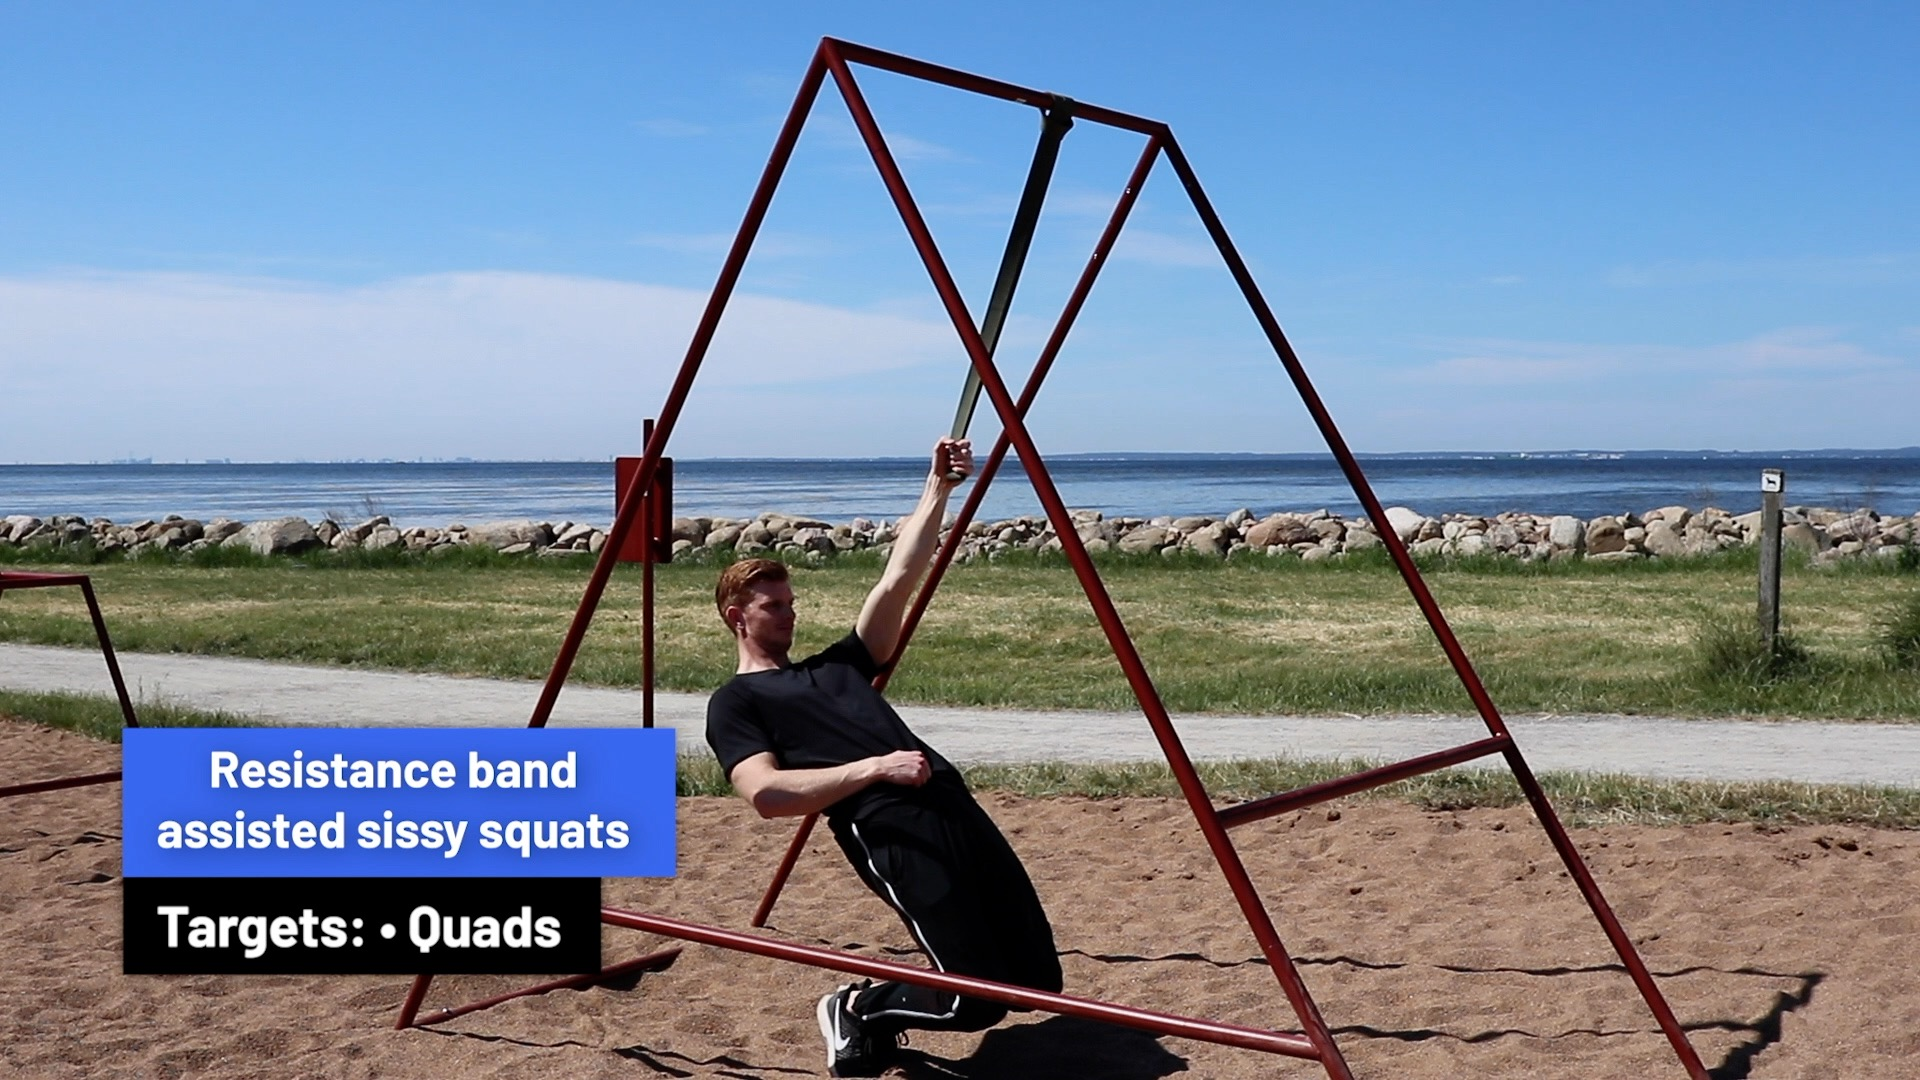 Resistance band assisted sissy squats